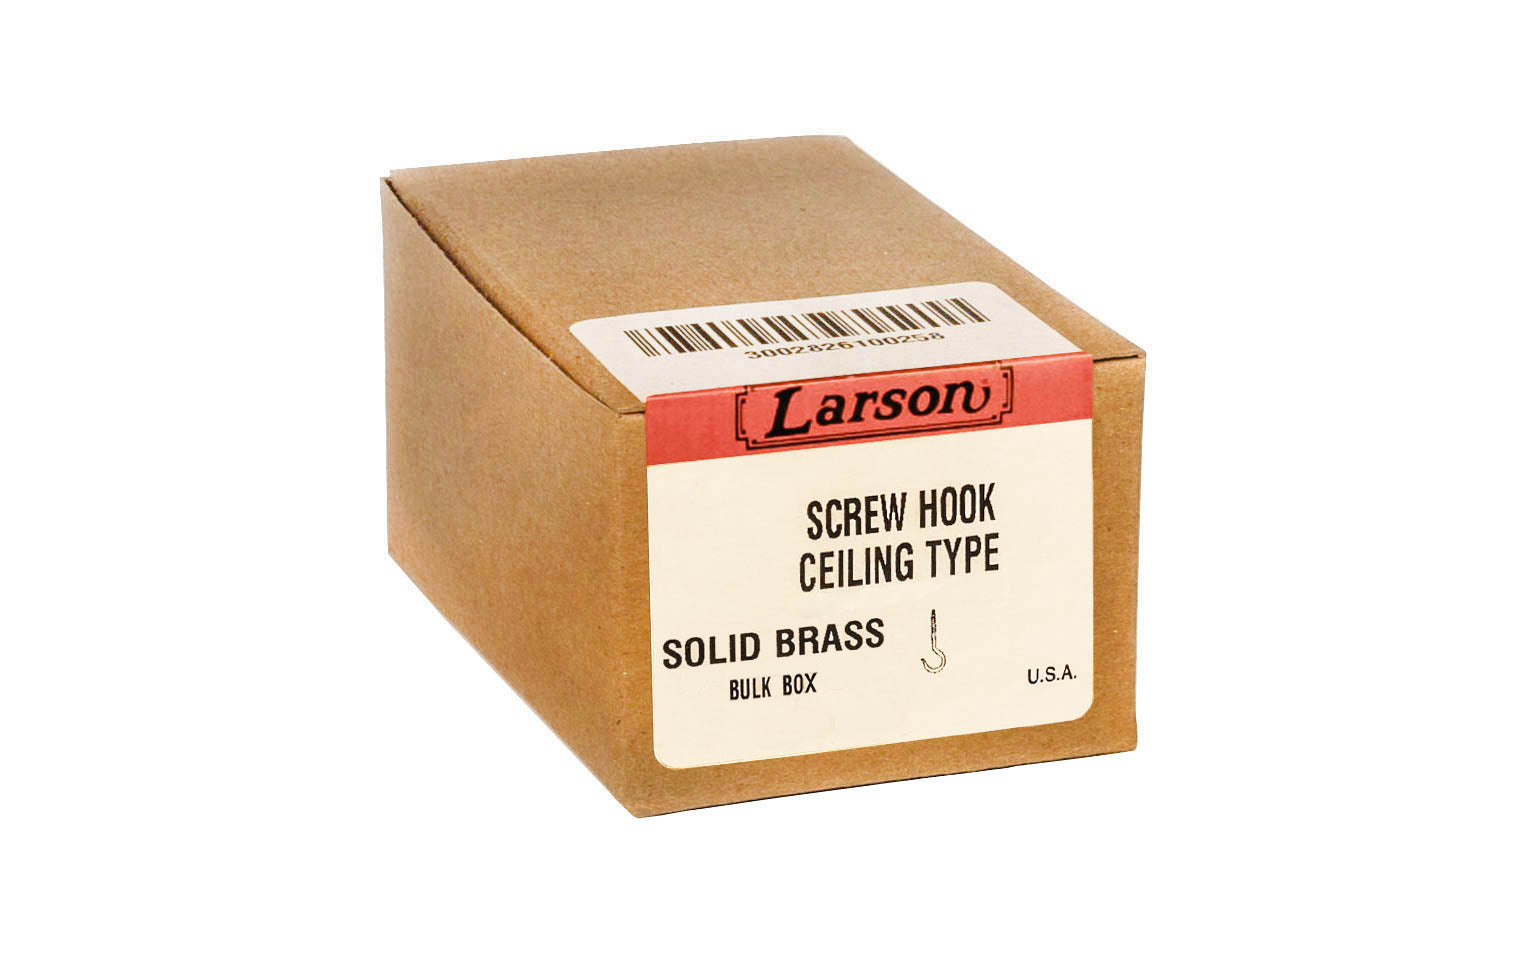 Bulk Box of Solid Brass Ceiling Hooks - Made in USA